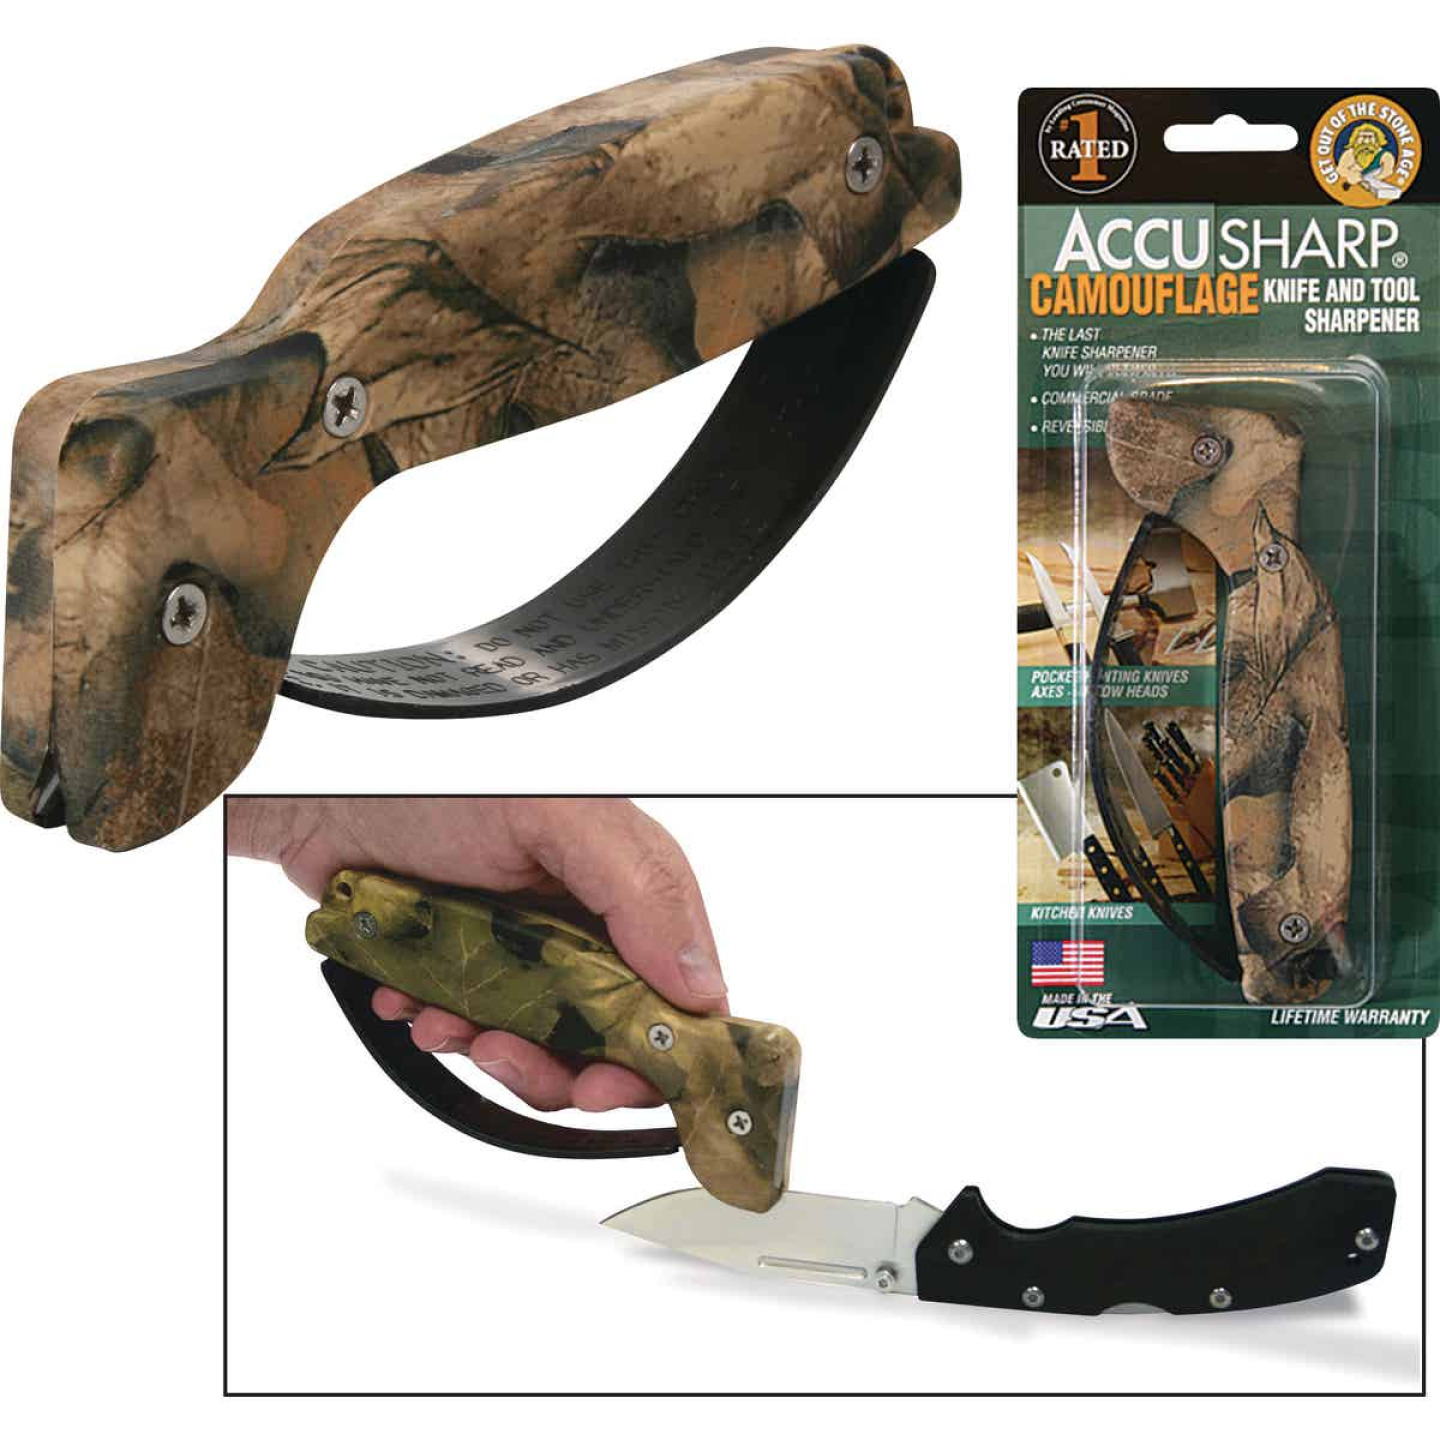 AccuSharp Groove Diamond-Honed Carbide Blade Camouflage Knife & Tool Sharpener Image 1